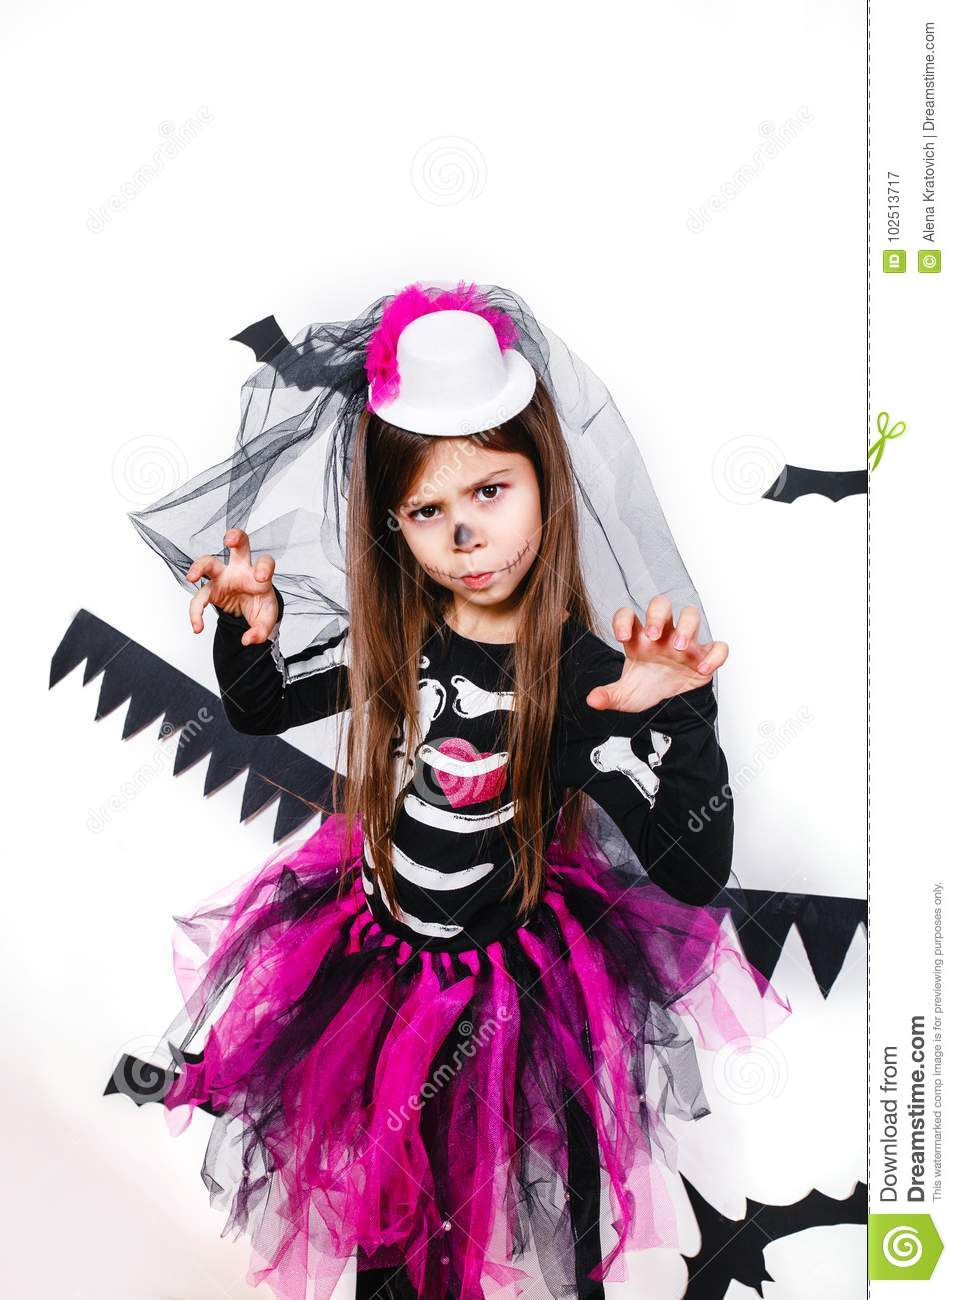 Download comp  sc 1 st  Dreamstime.com & Happy Girl In A Skeleton Costume Having Fun Stock Image - Image of ...